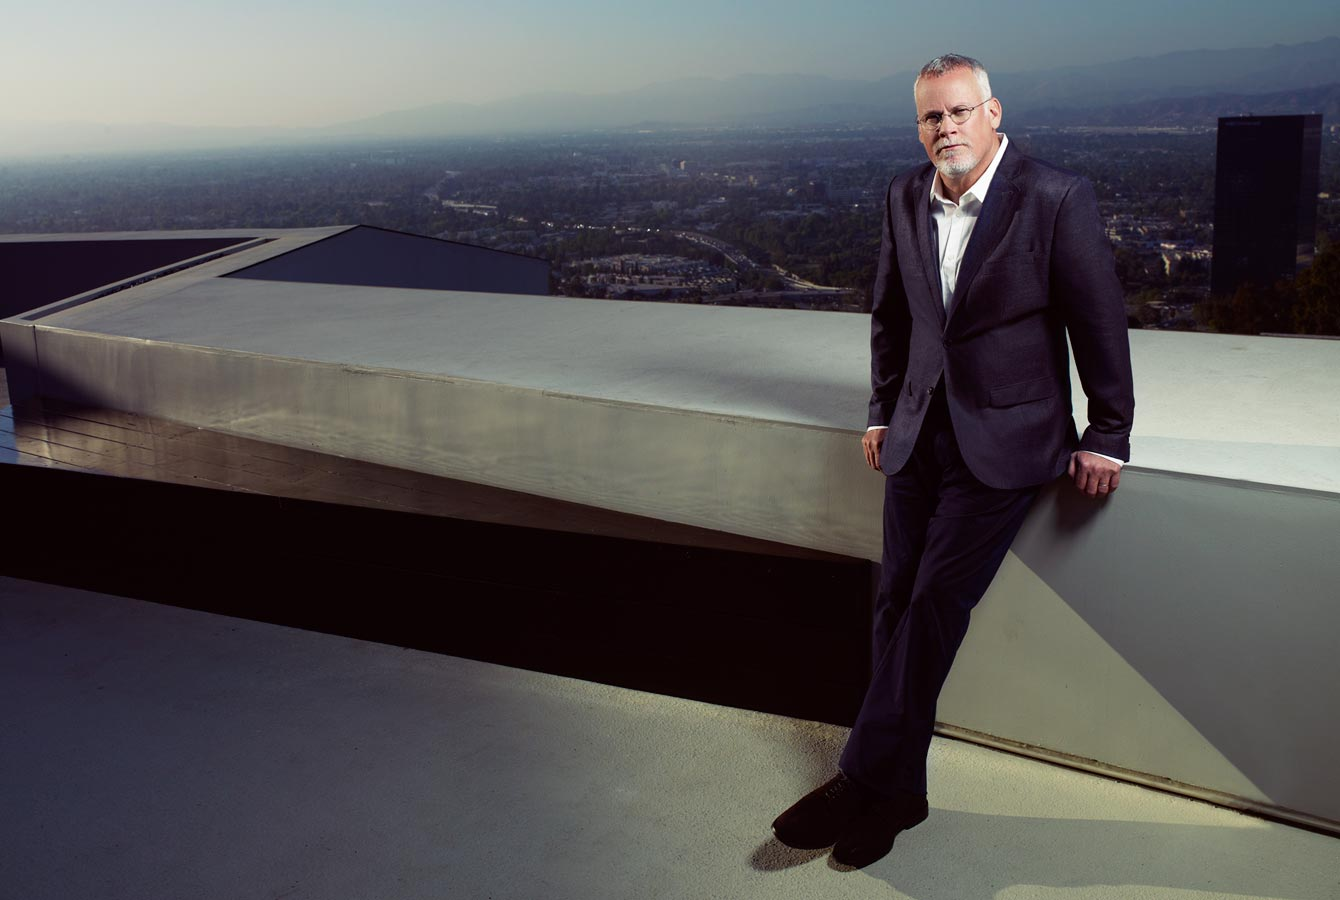 Mark DeLong - Celebrity Photographer - Male Celebrity wearing a suit stands on top of a roof.